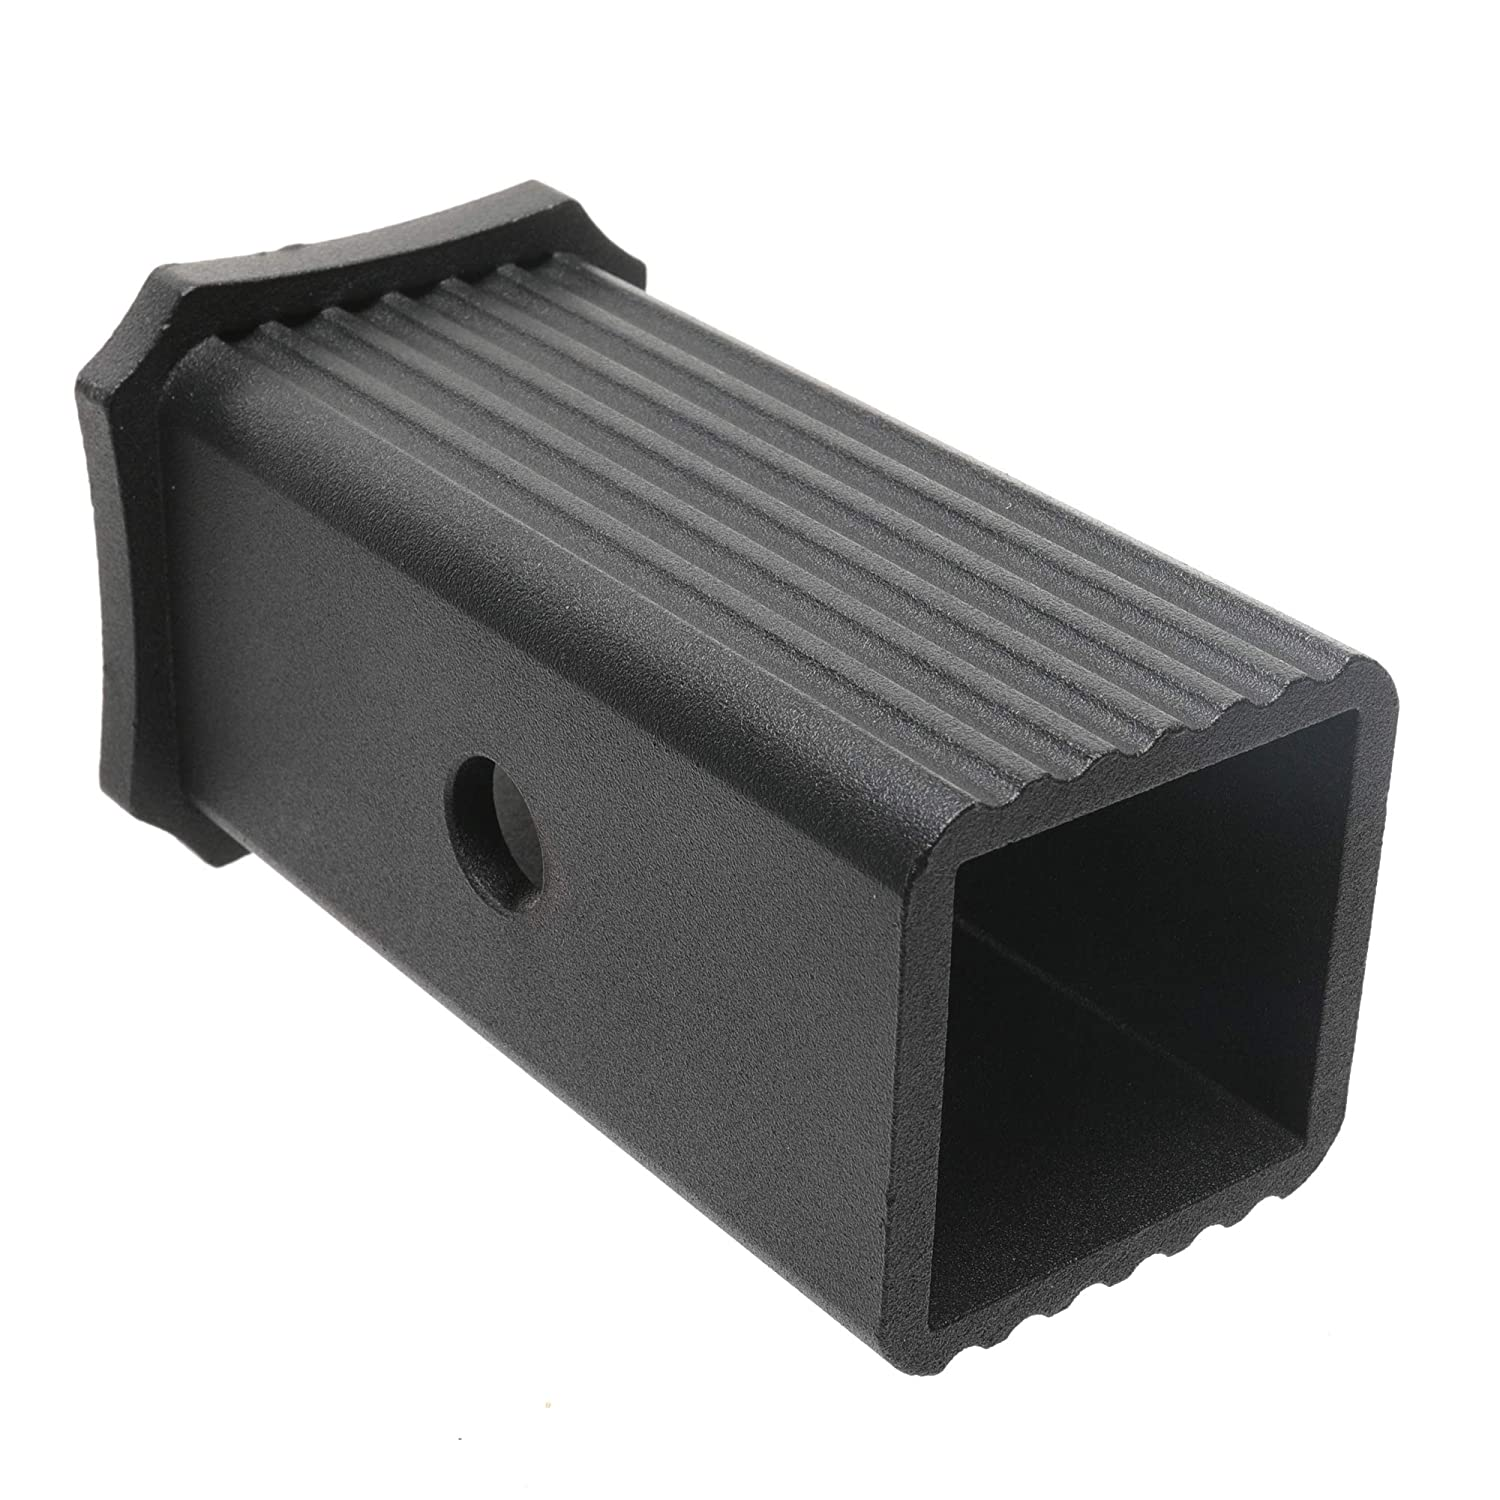 2-1//2 to 2 DEF 2-1//2 to 2 Insert Sleeve Mount Adapter for Standard 2-1//2 Square Receiver Hitch Billet Aluminum